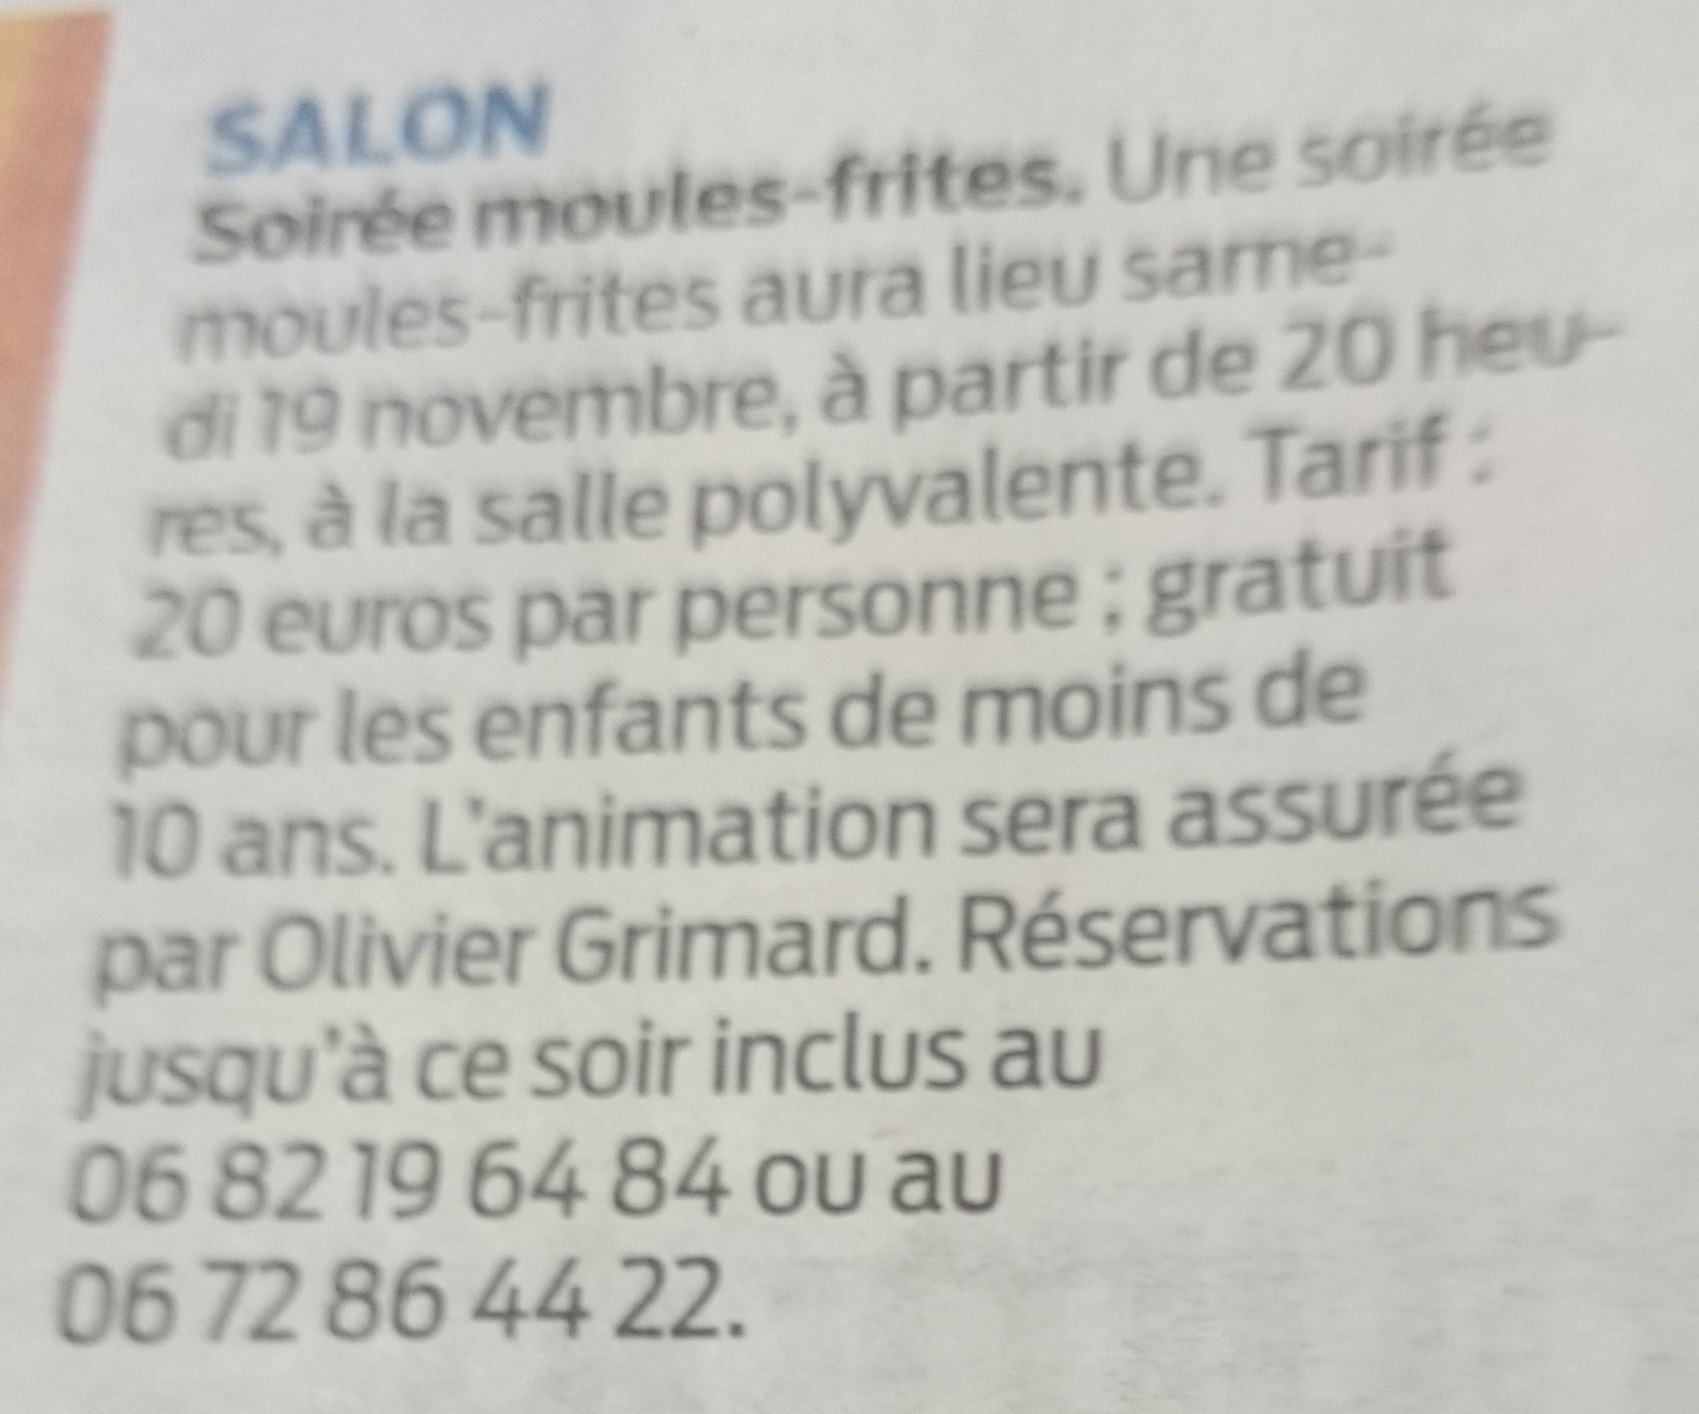 https://static.blog4ever.com/2008/03/188790/salon-moules-frites.jpg